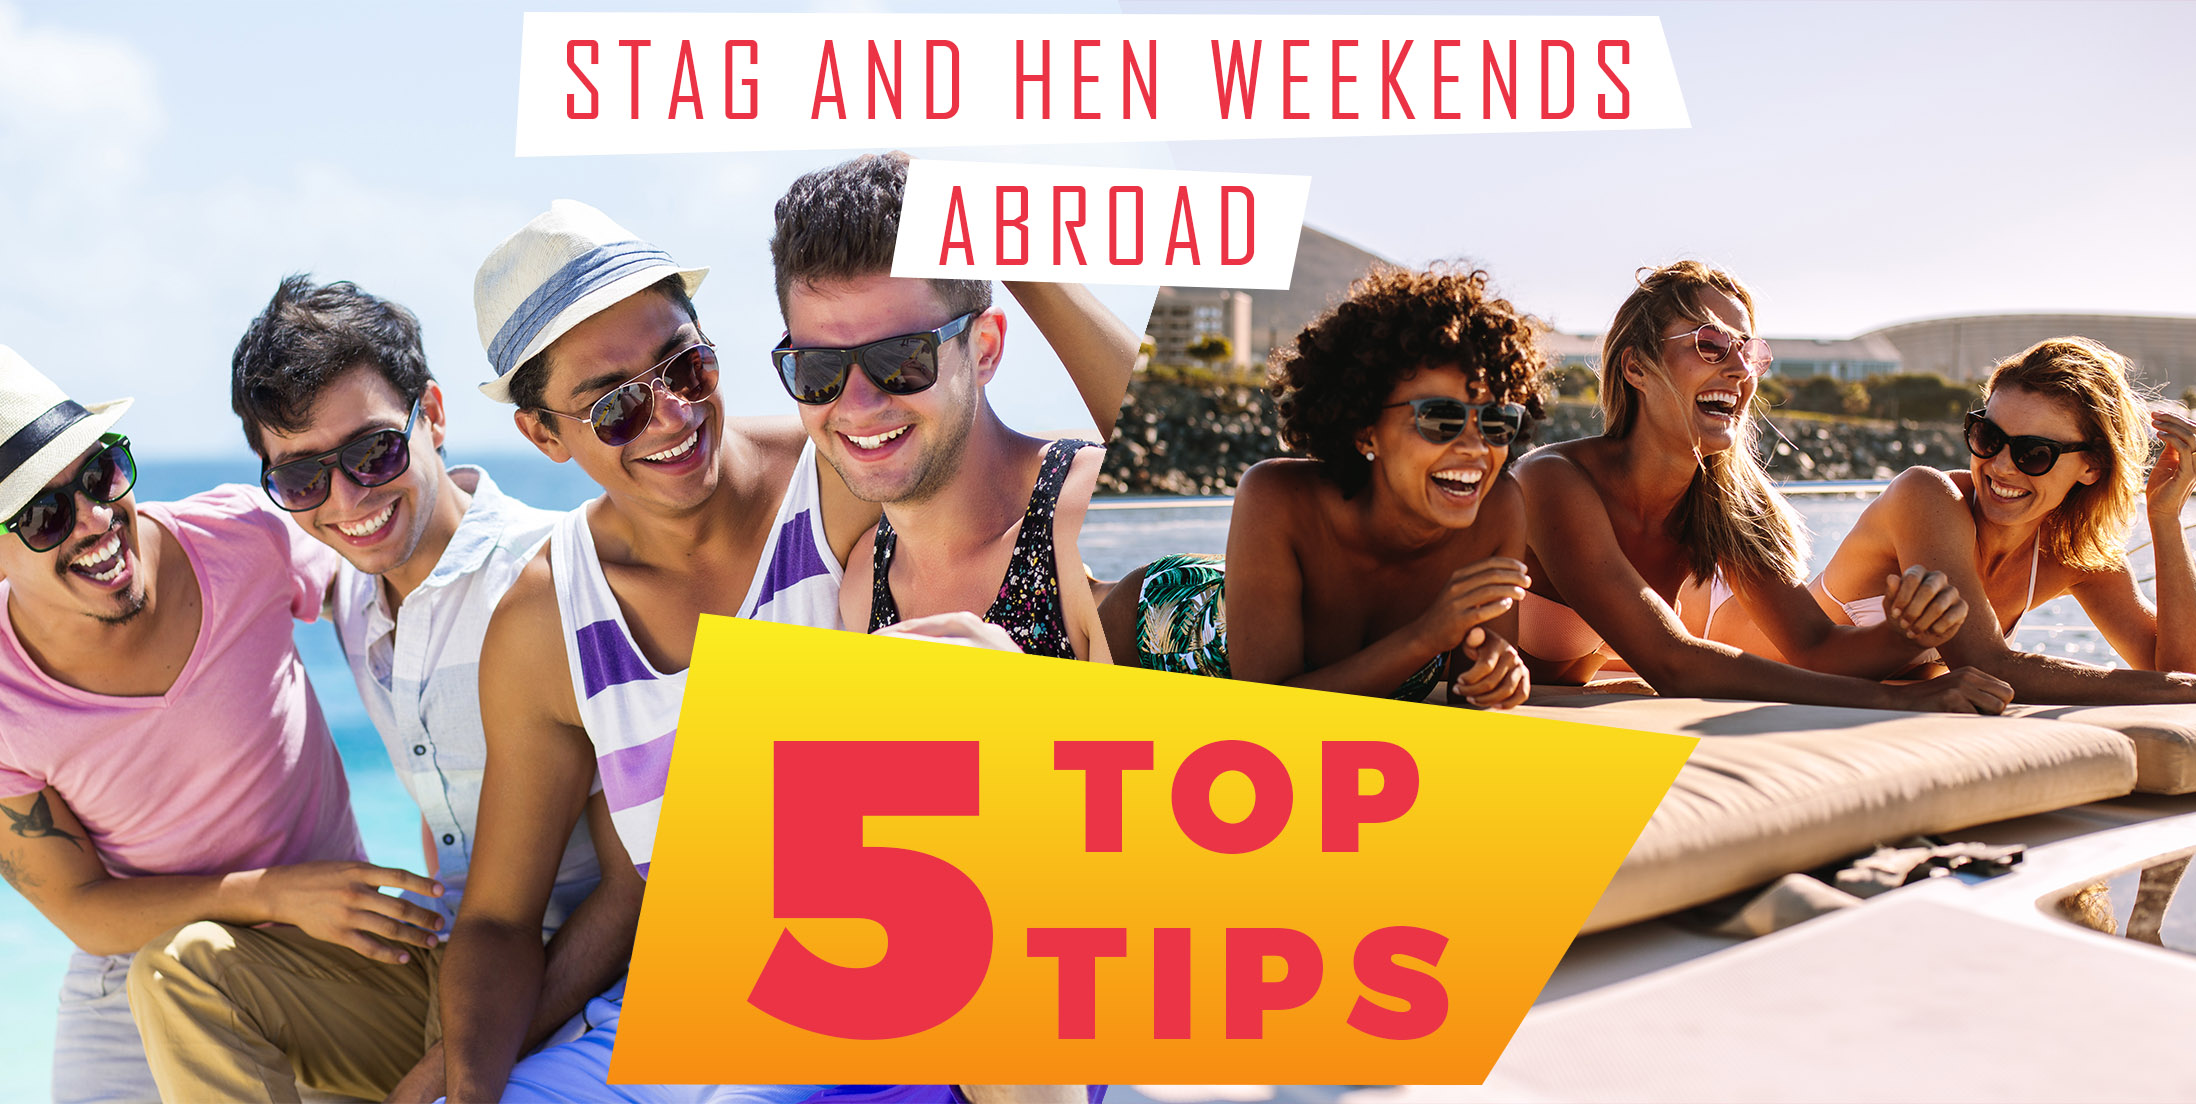 Hen and Stag Weekends Abroad - Crucial Top 5 Tips